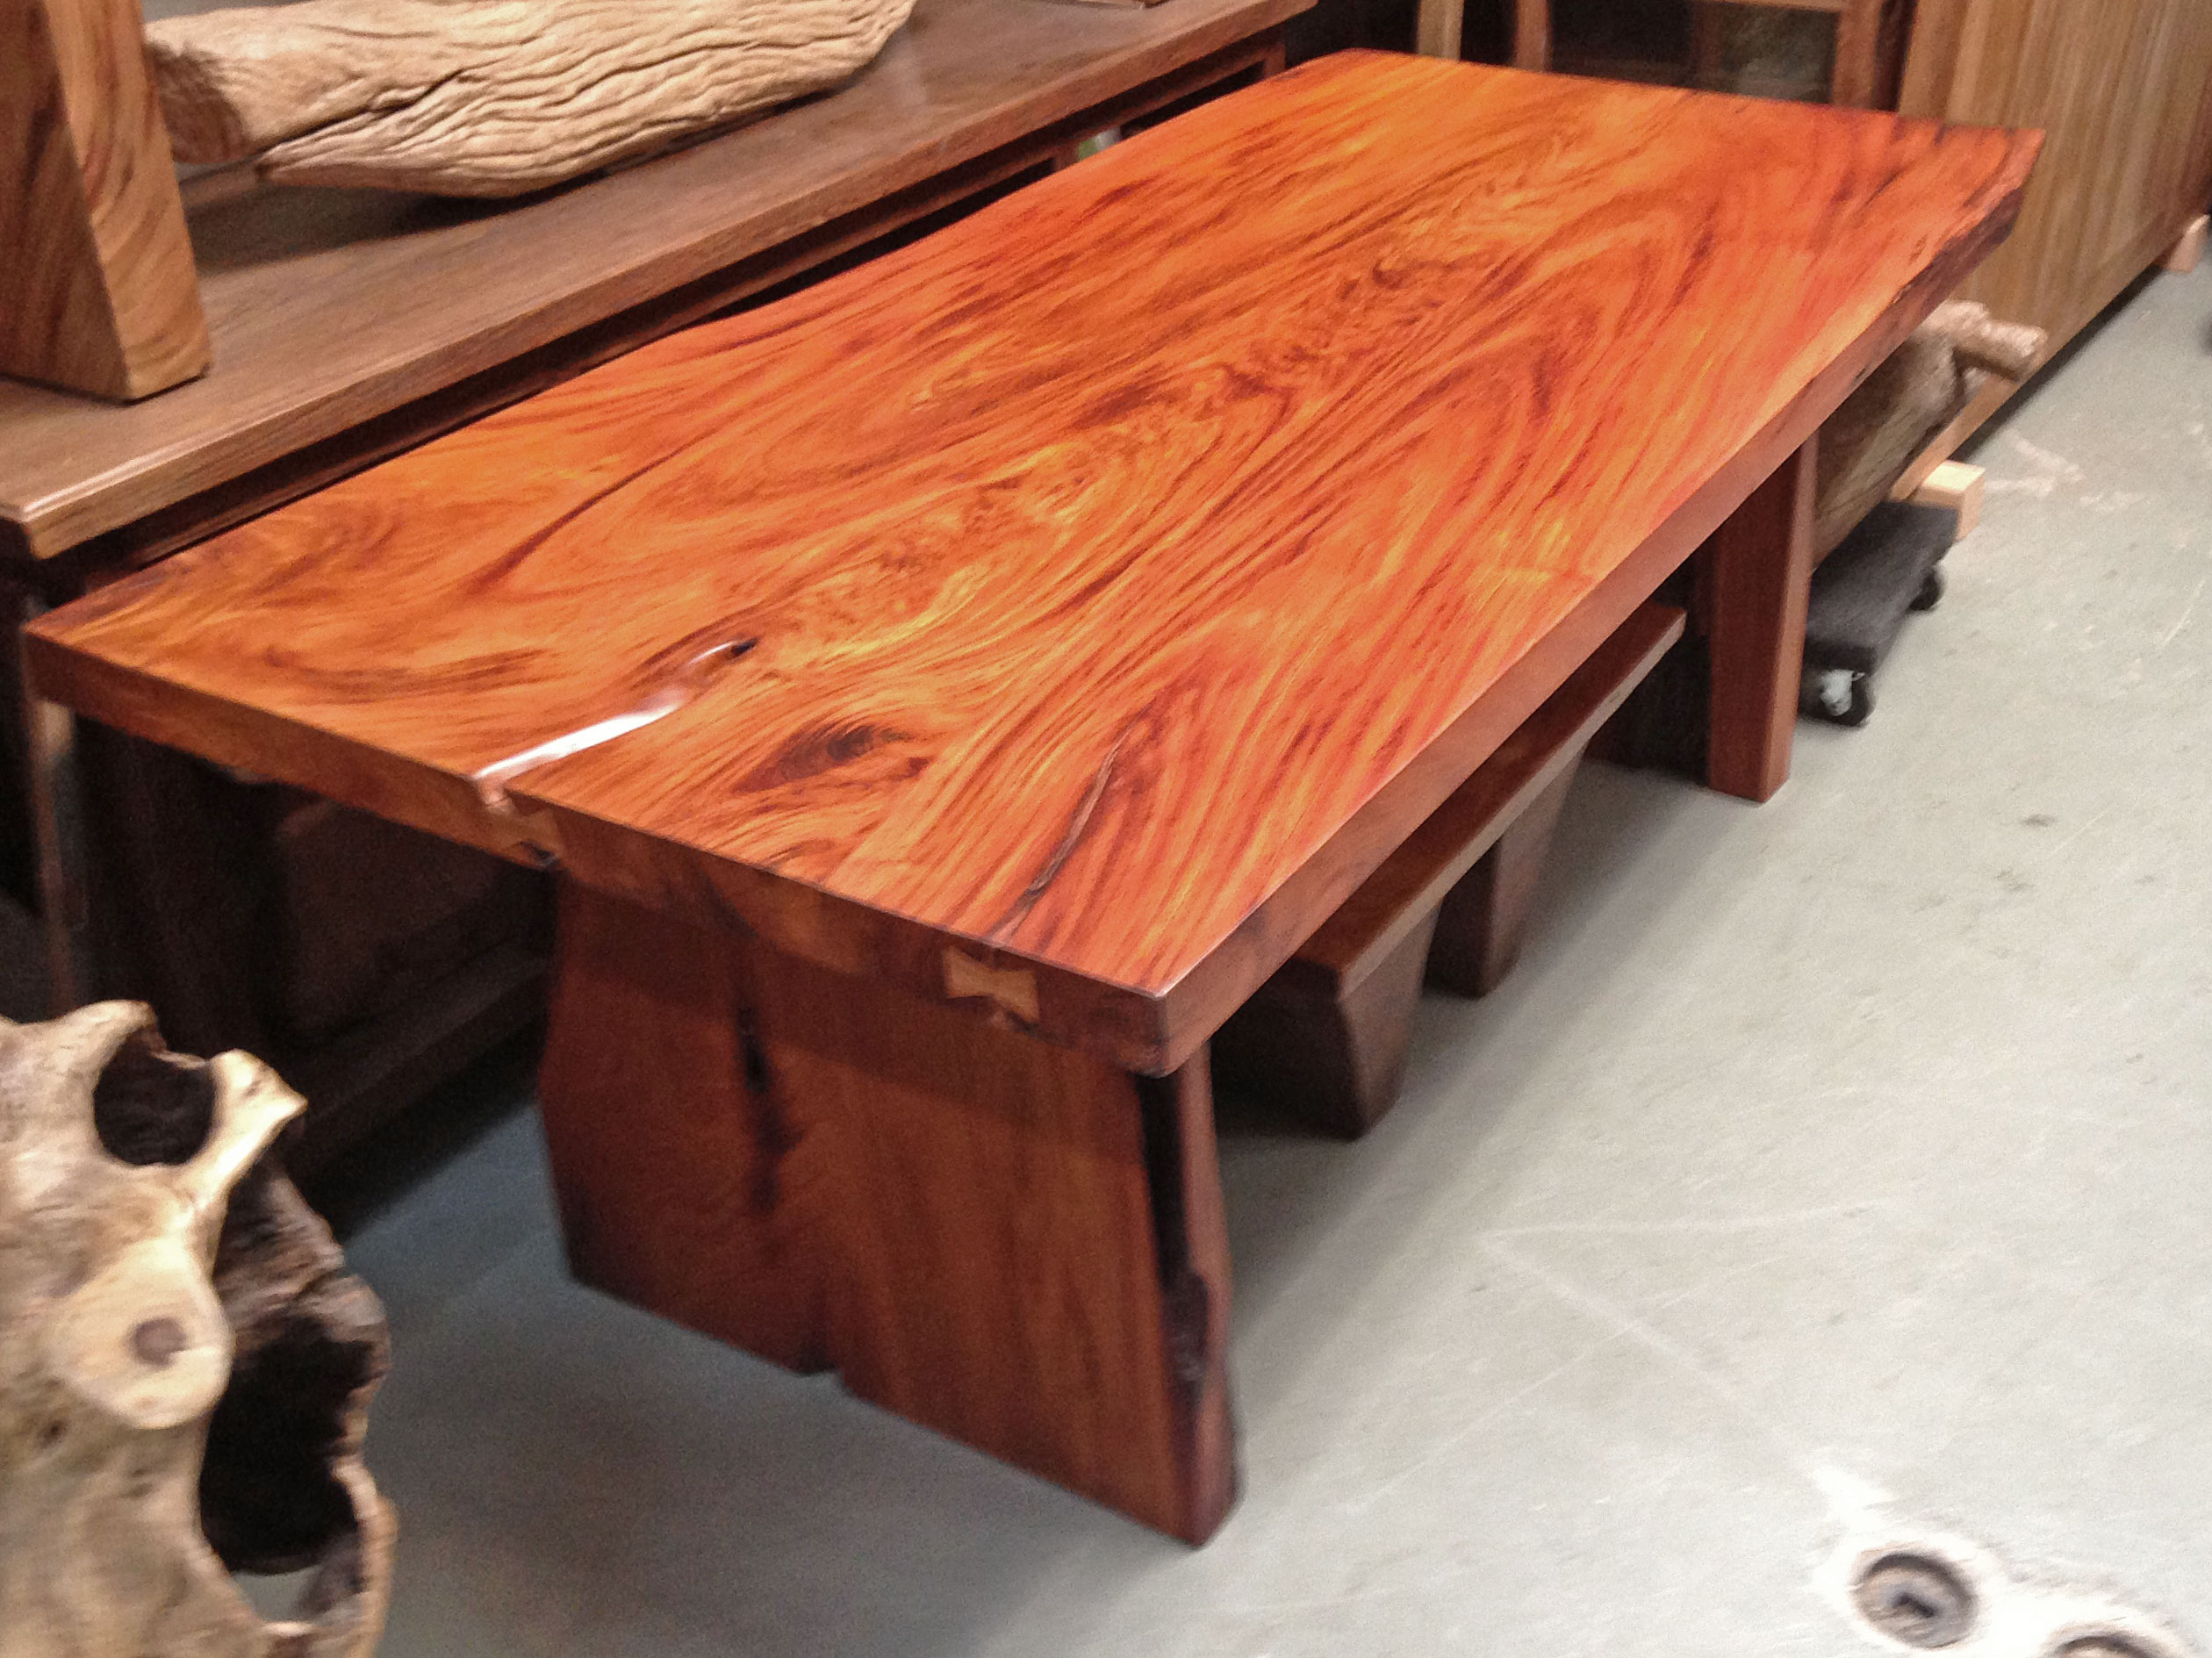 Makha wood table